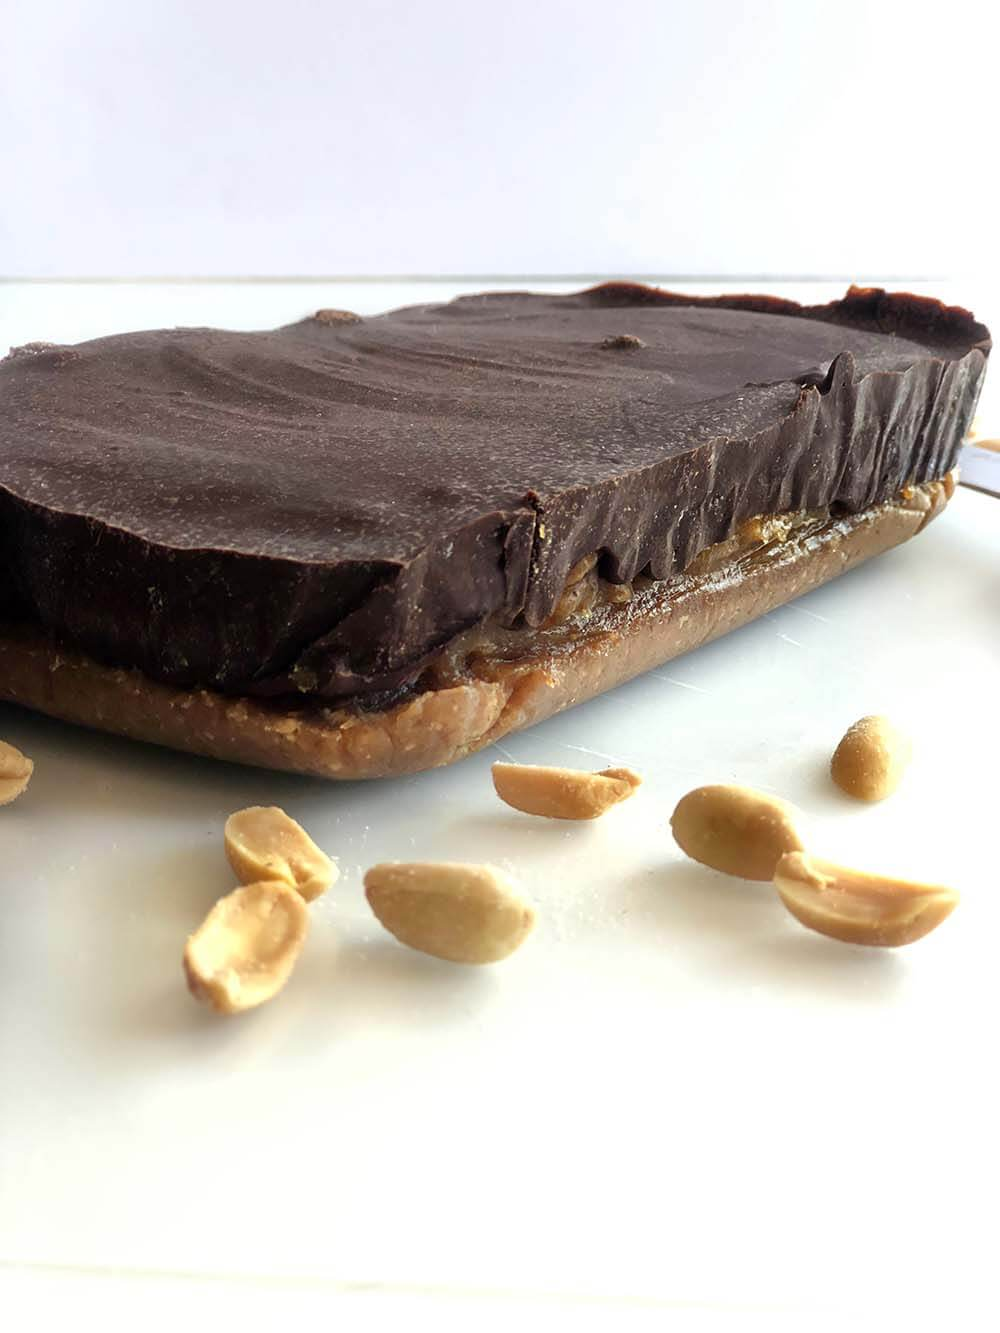 Side of homemade snickers bar on table after being removed from glass pan